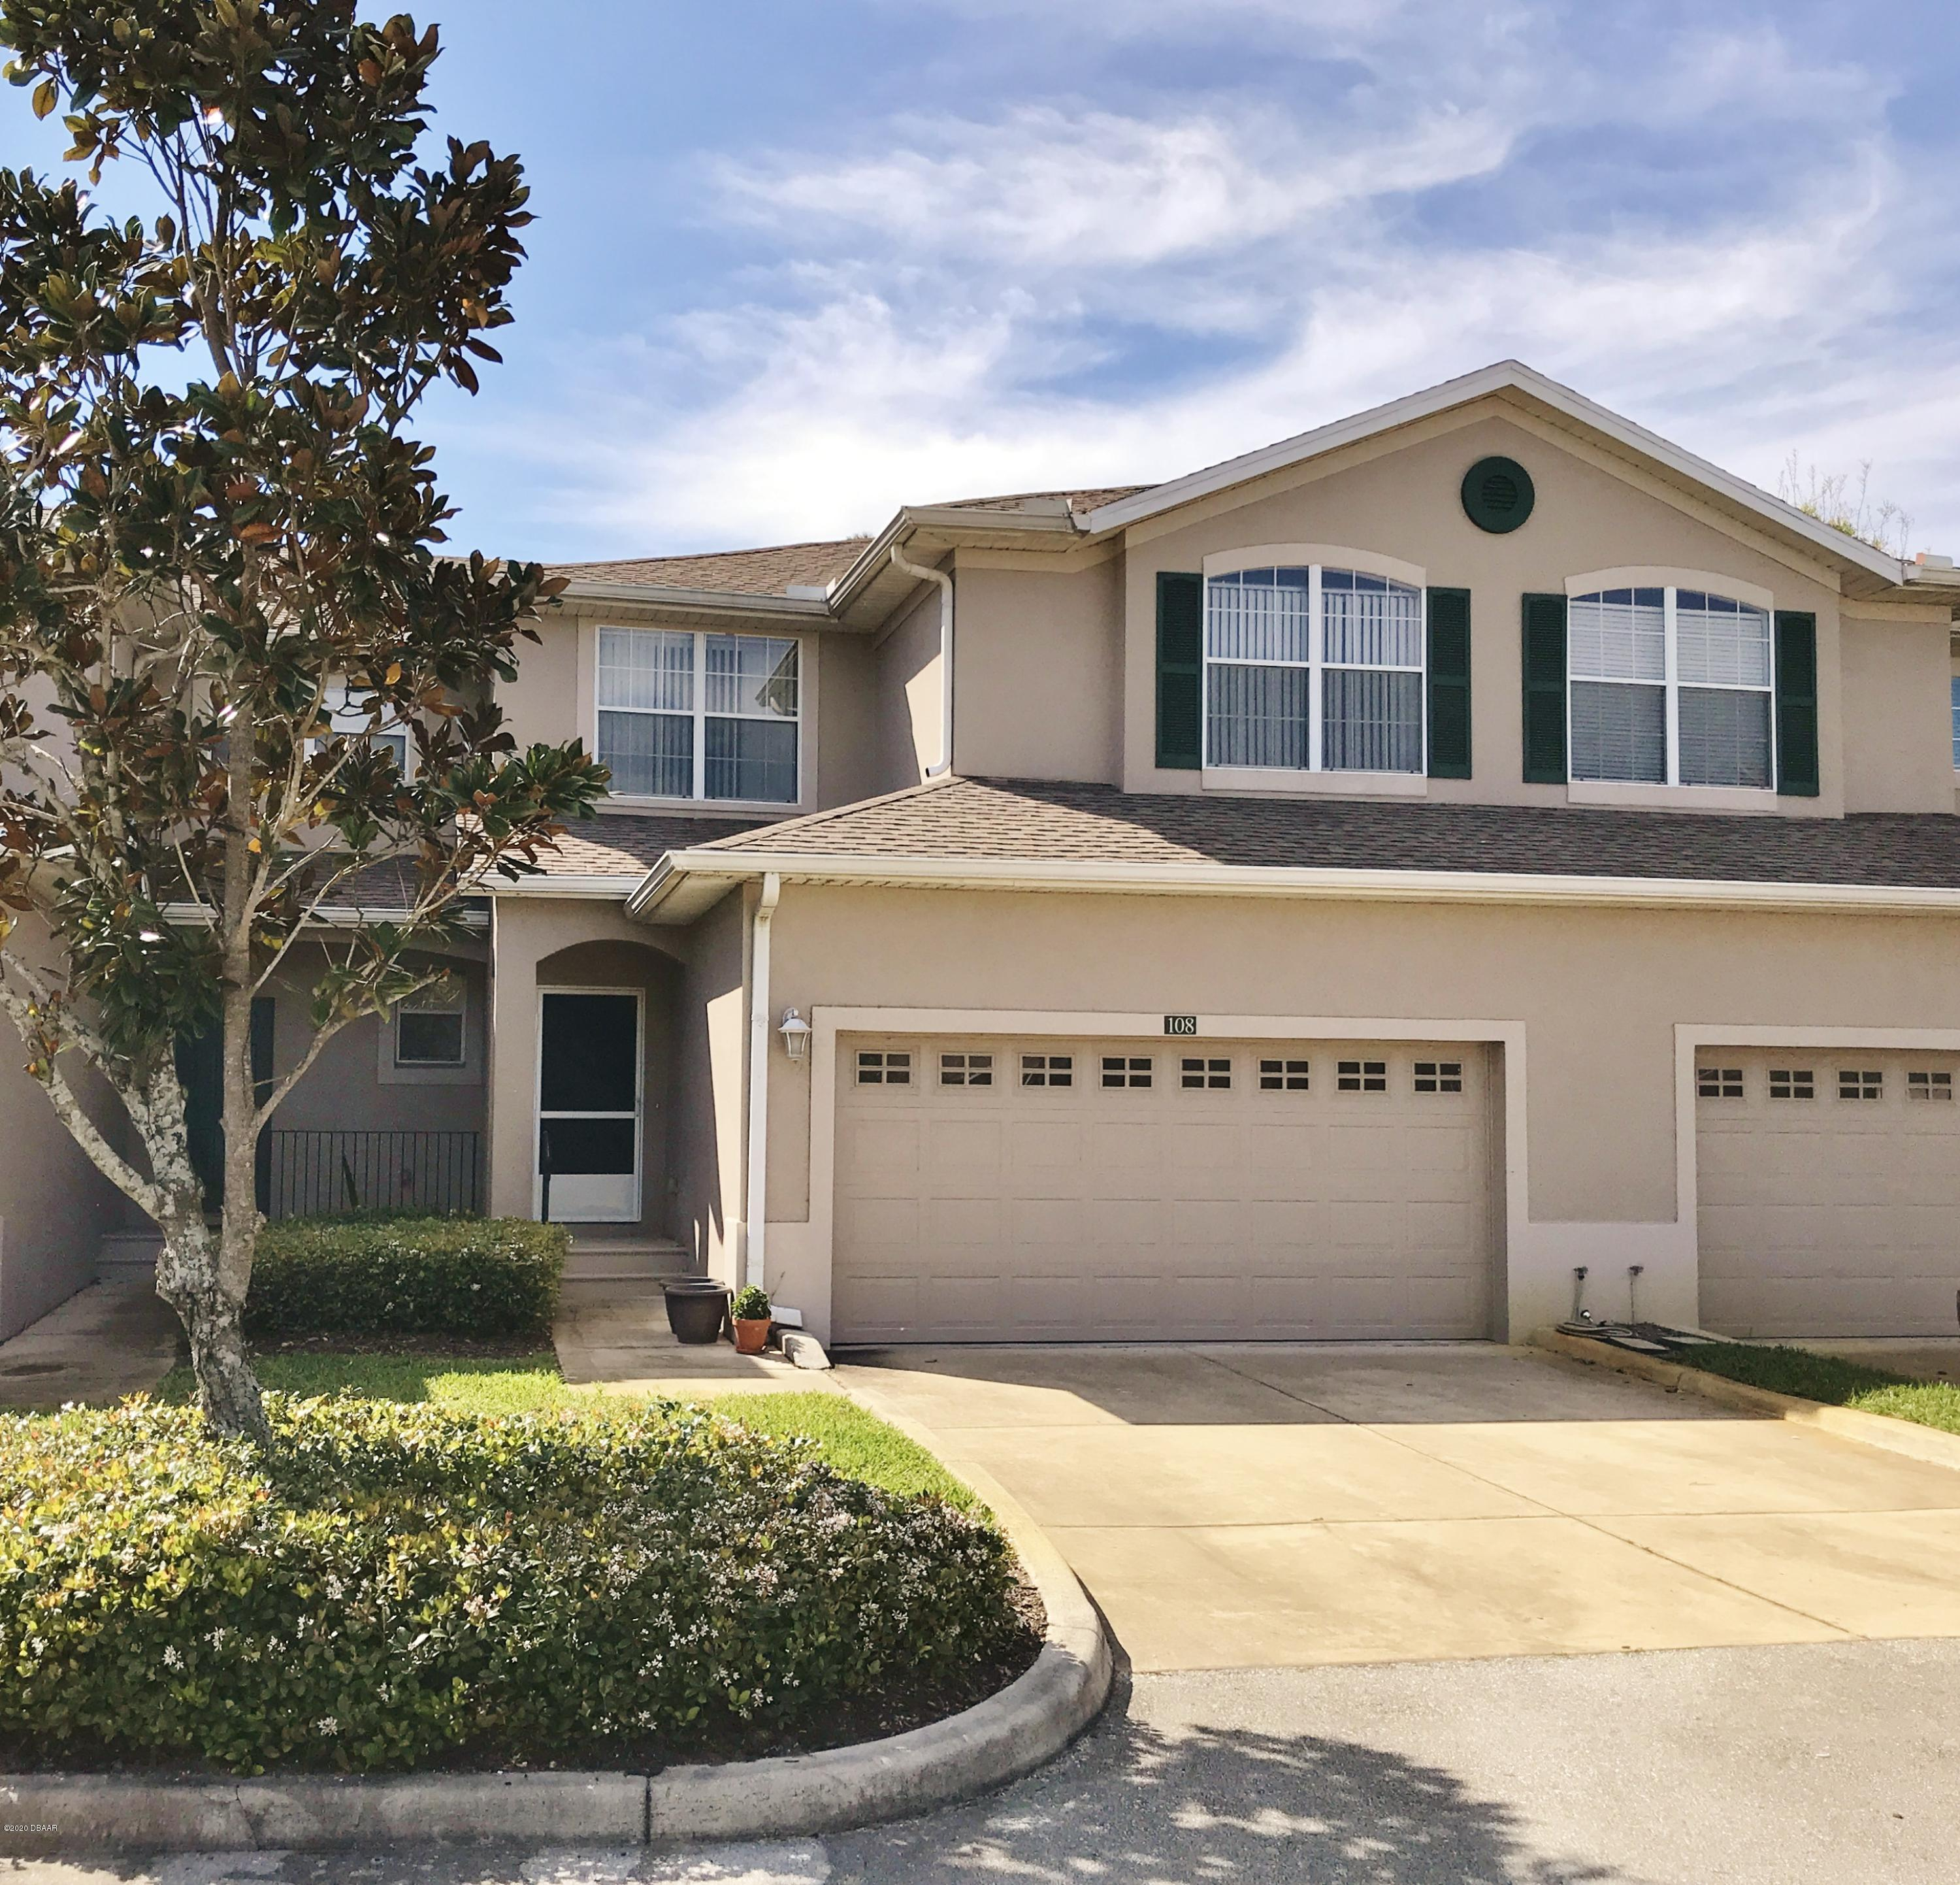 108 Grey Widgeon Daytona Beach - 1